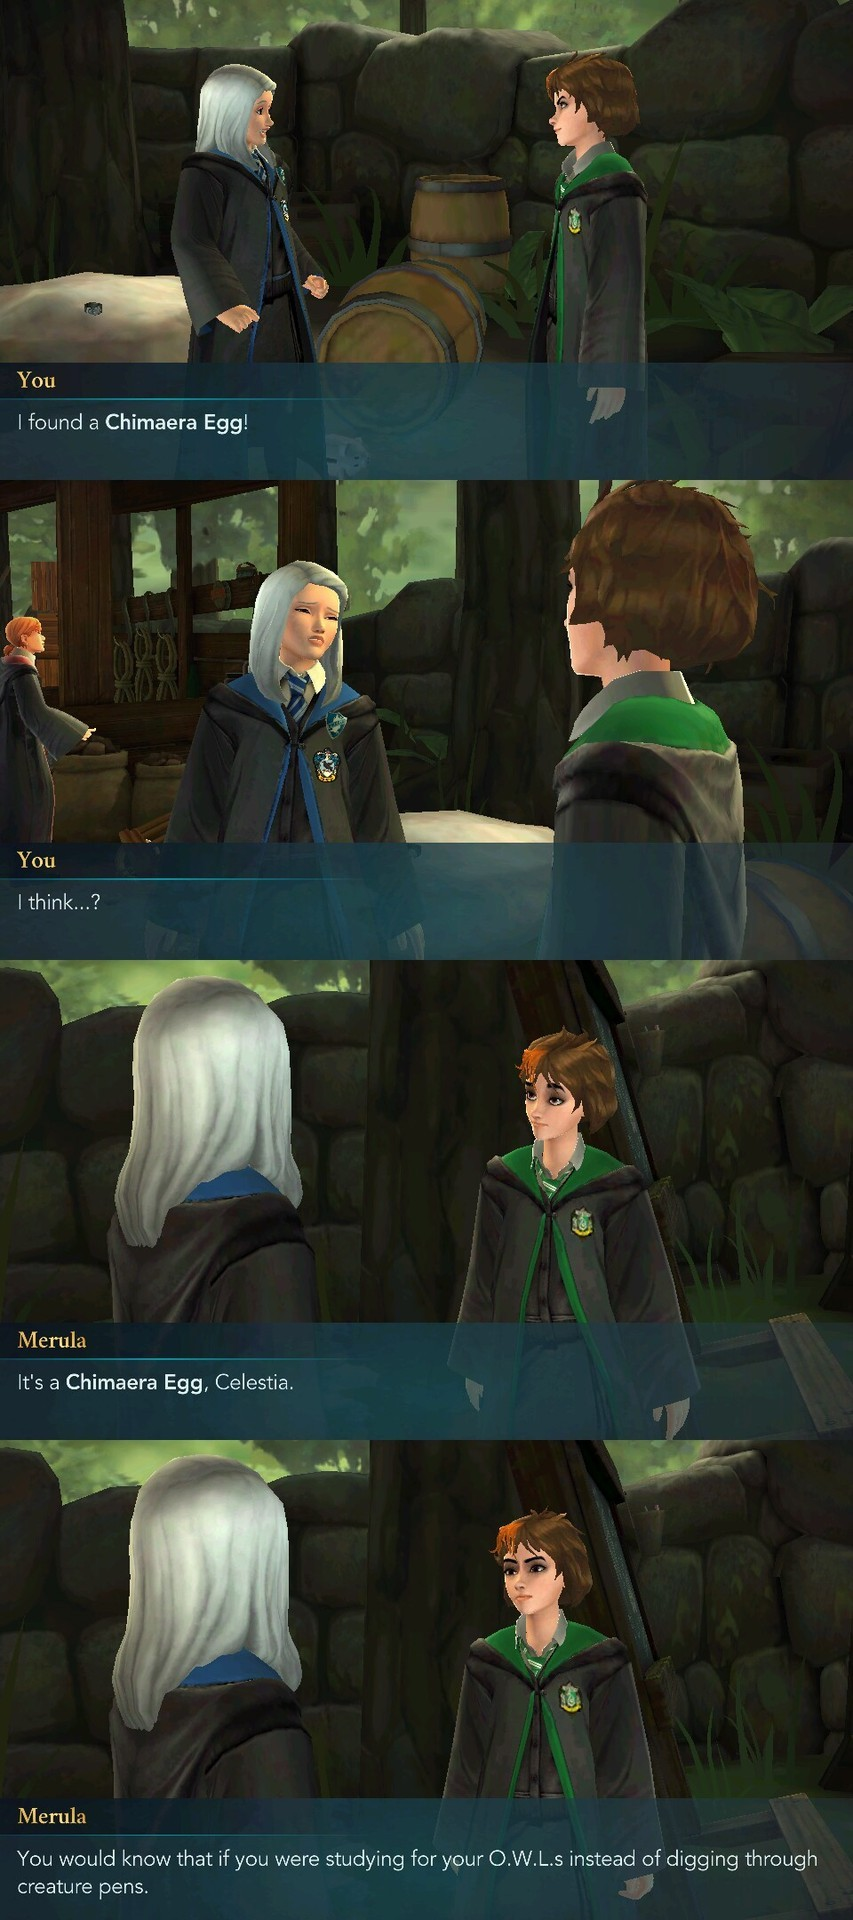 Hogwarts Mystery Owls : hogwarts, mystery, Hogwarts, Mystery, Kinda, Worried, About, O.W.L.S., Out...